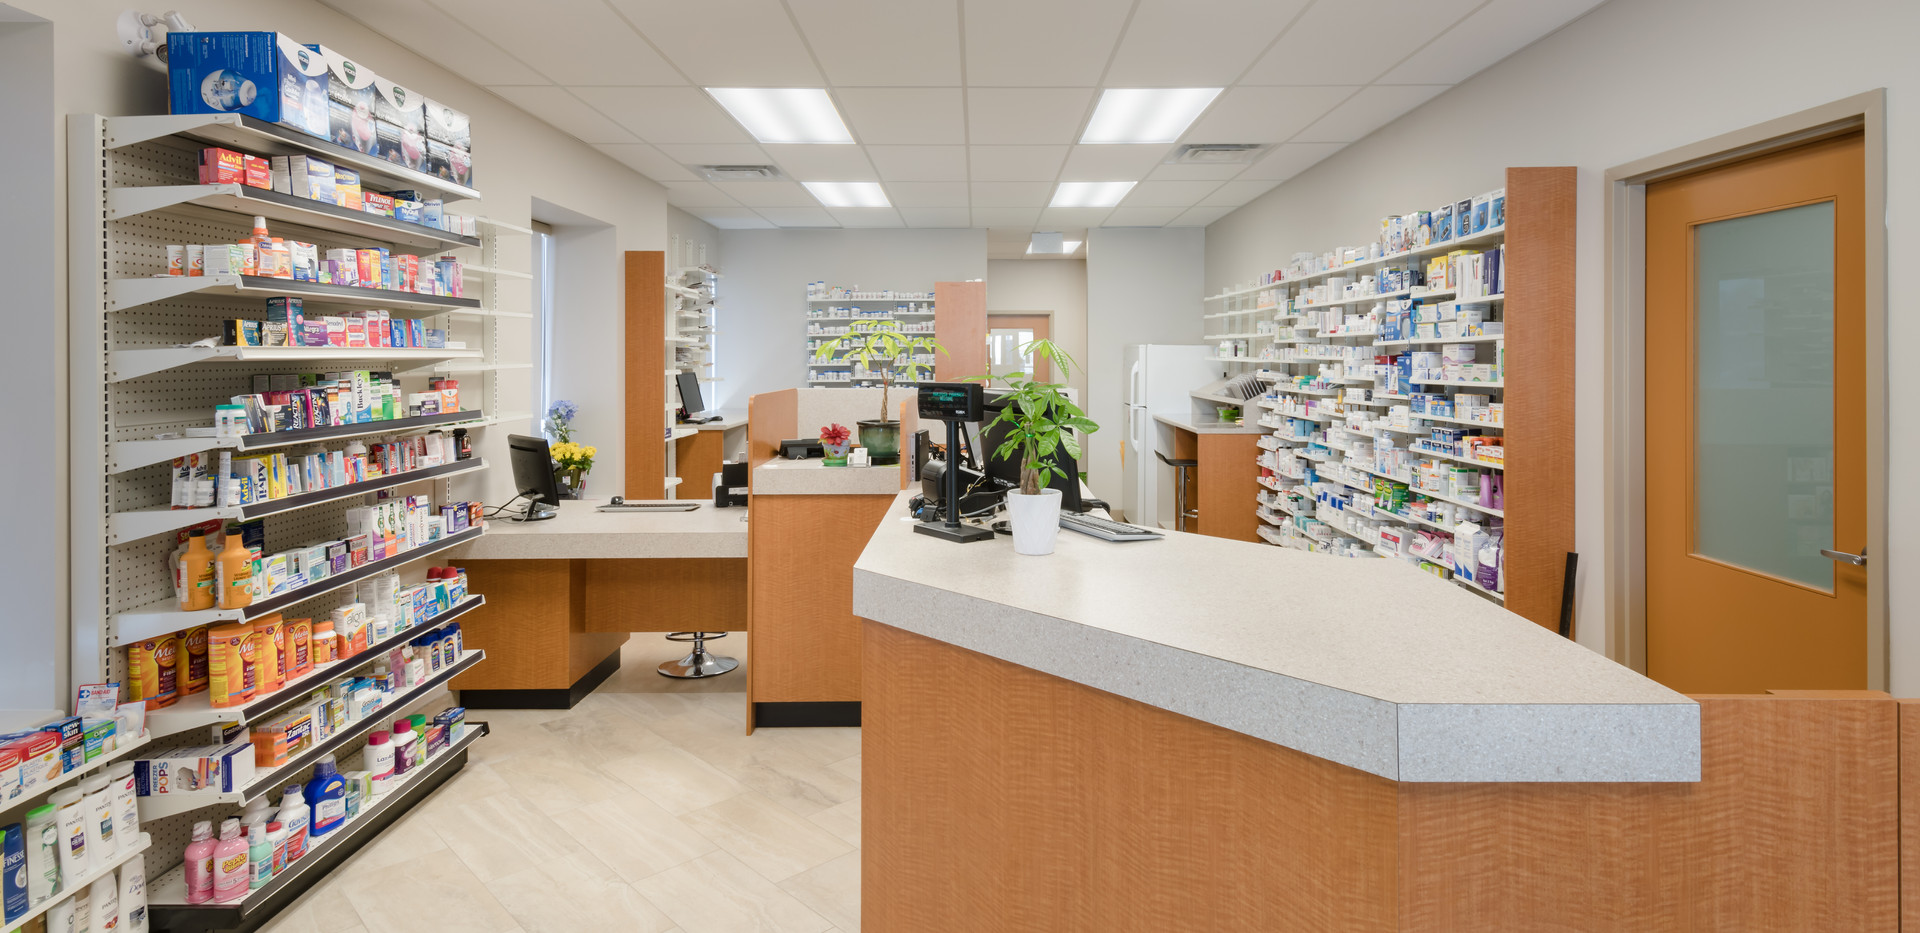 007-Mi-Orillia Pharmacy-High Res.jpg